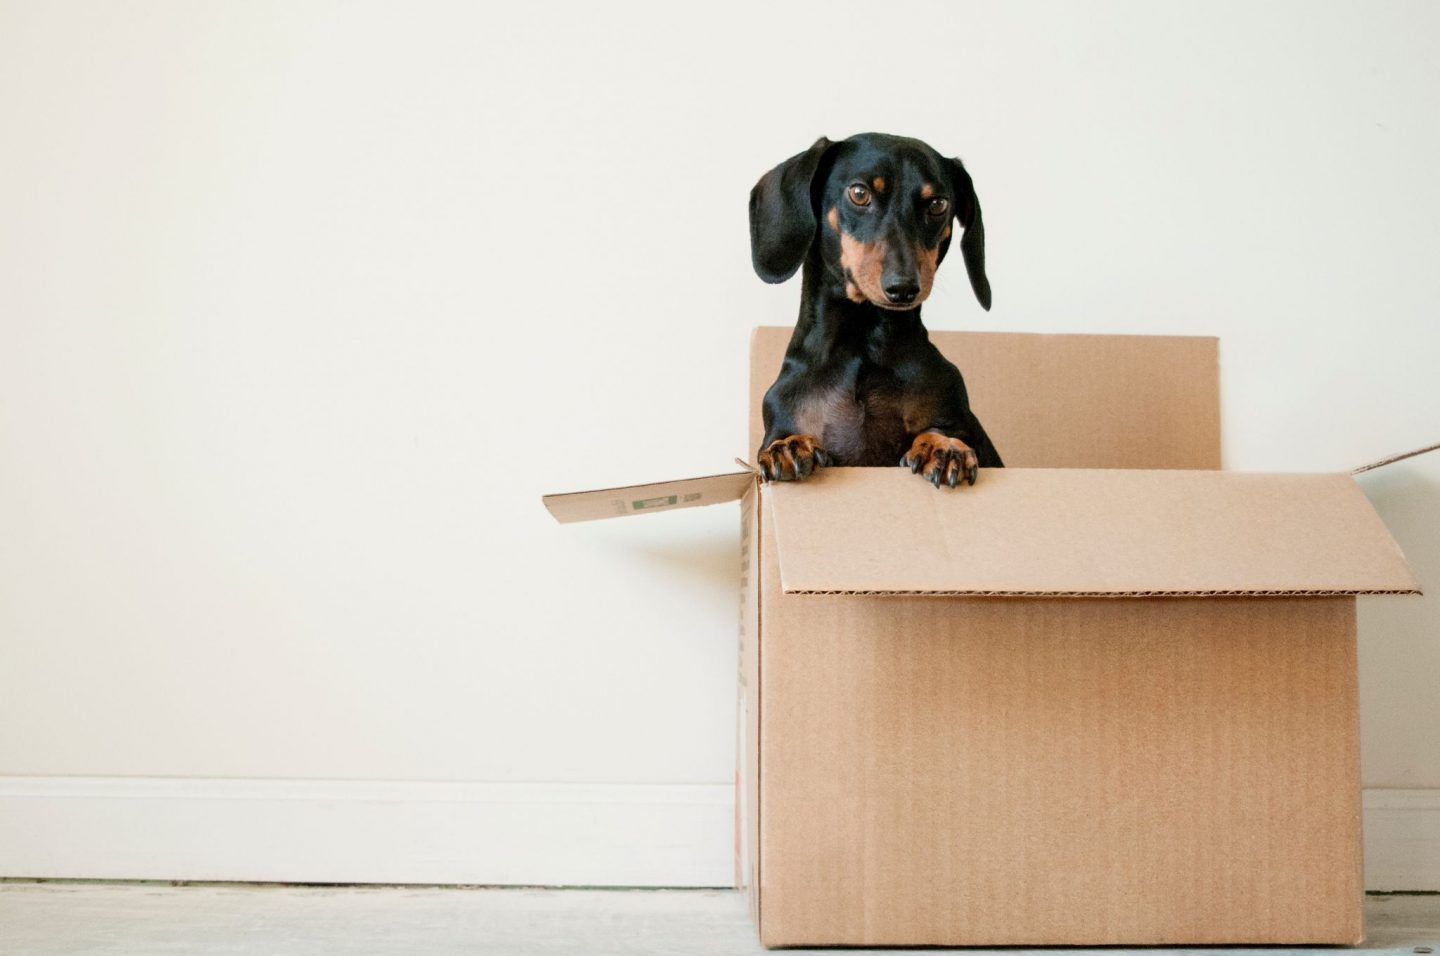 6 COMMON PACKING MISTAKES TO AVOID